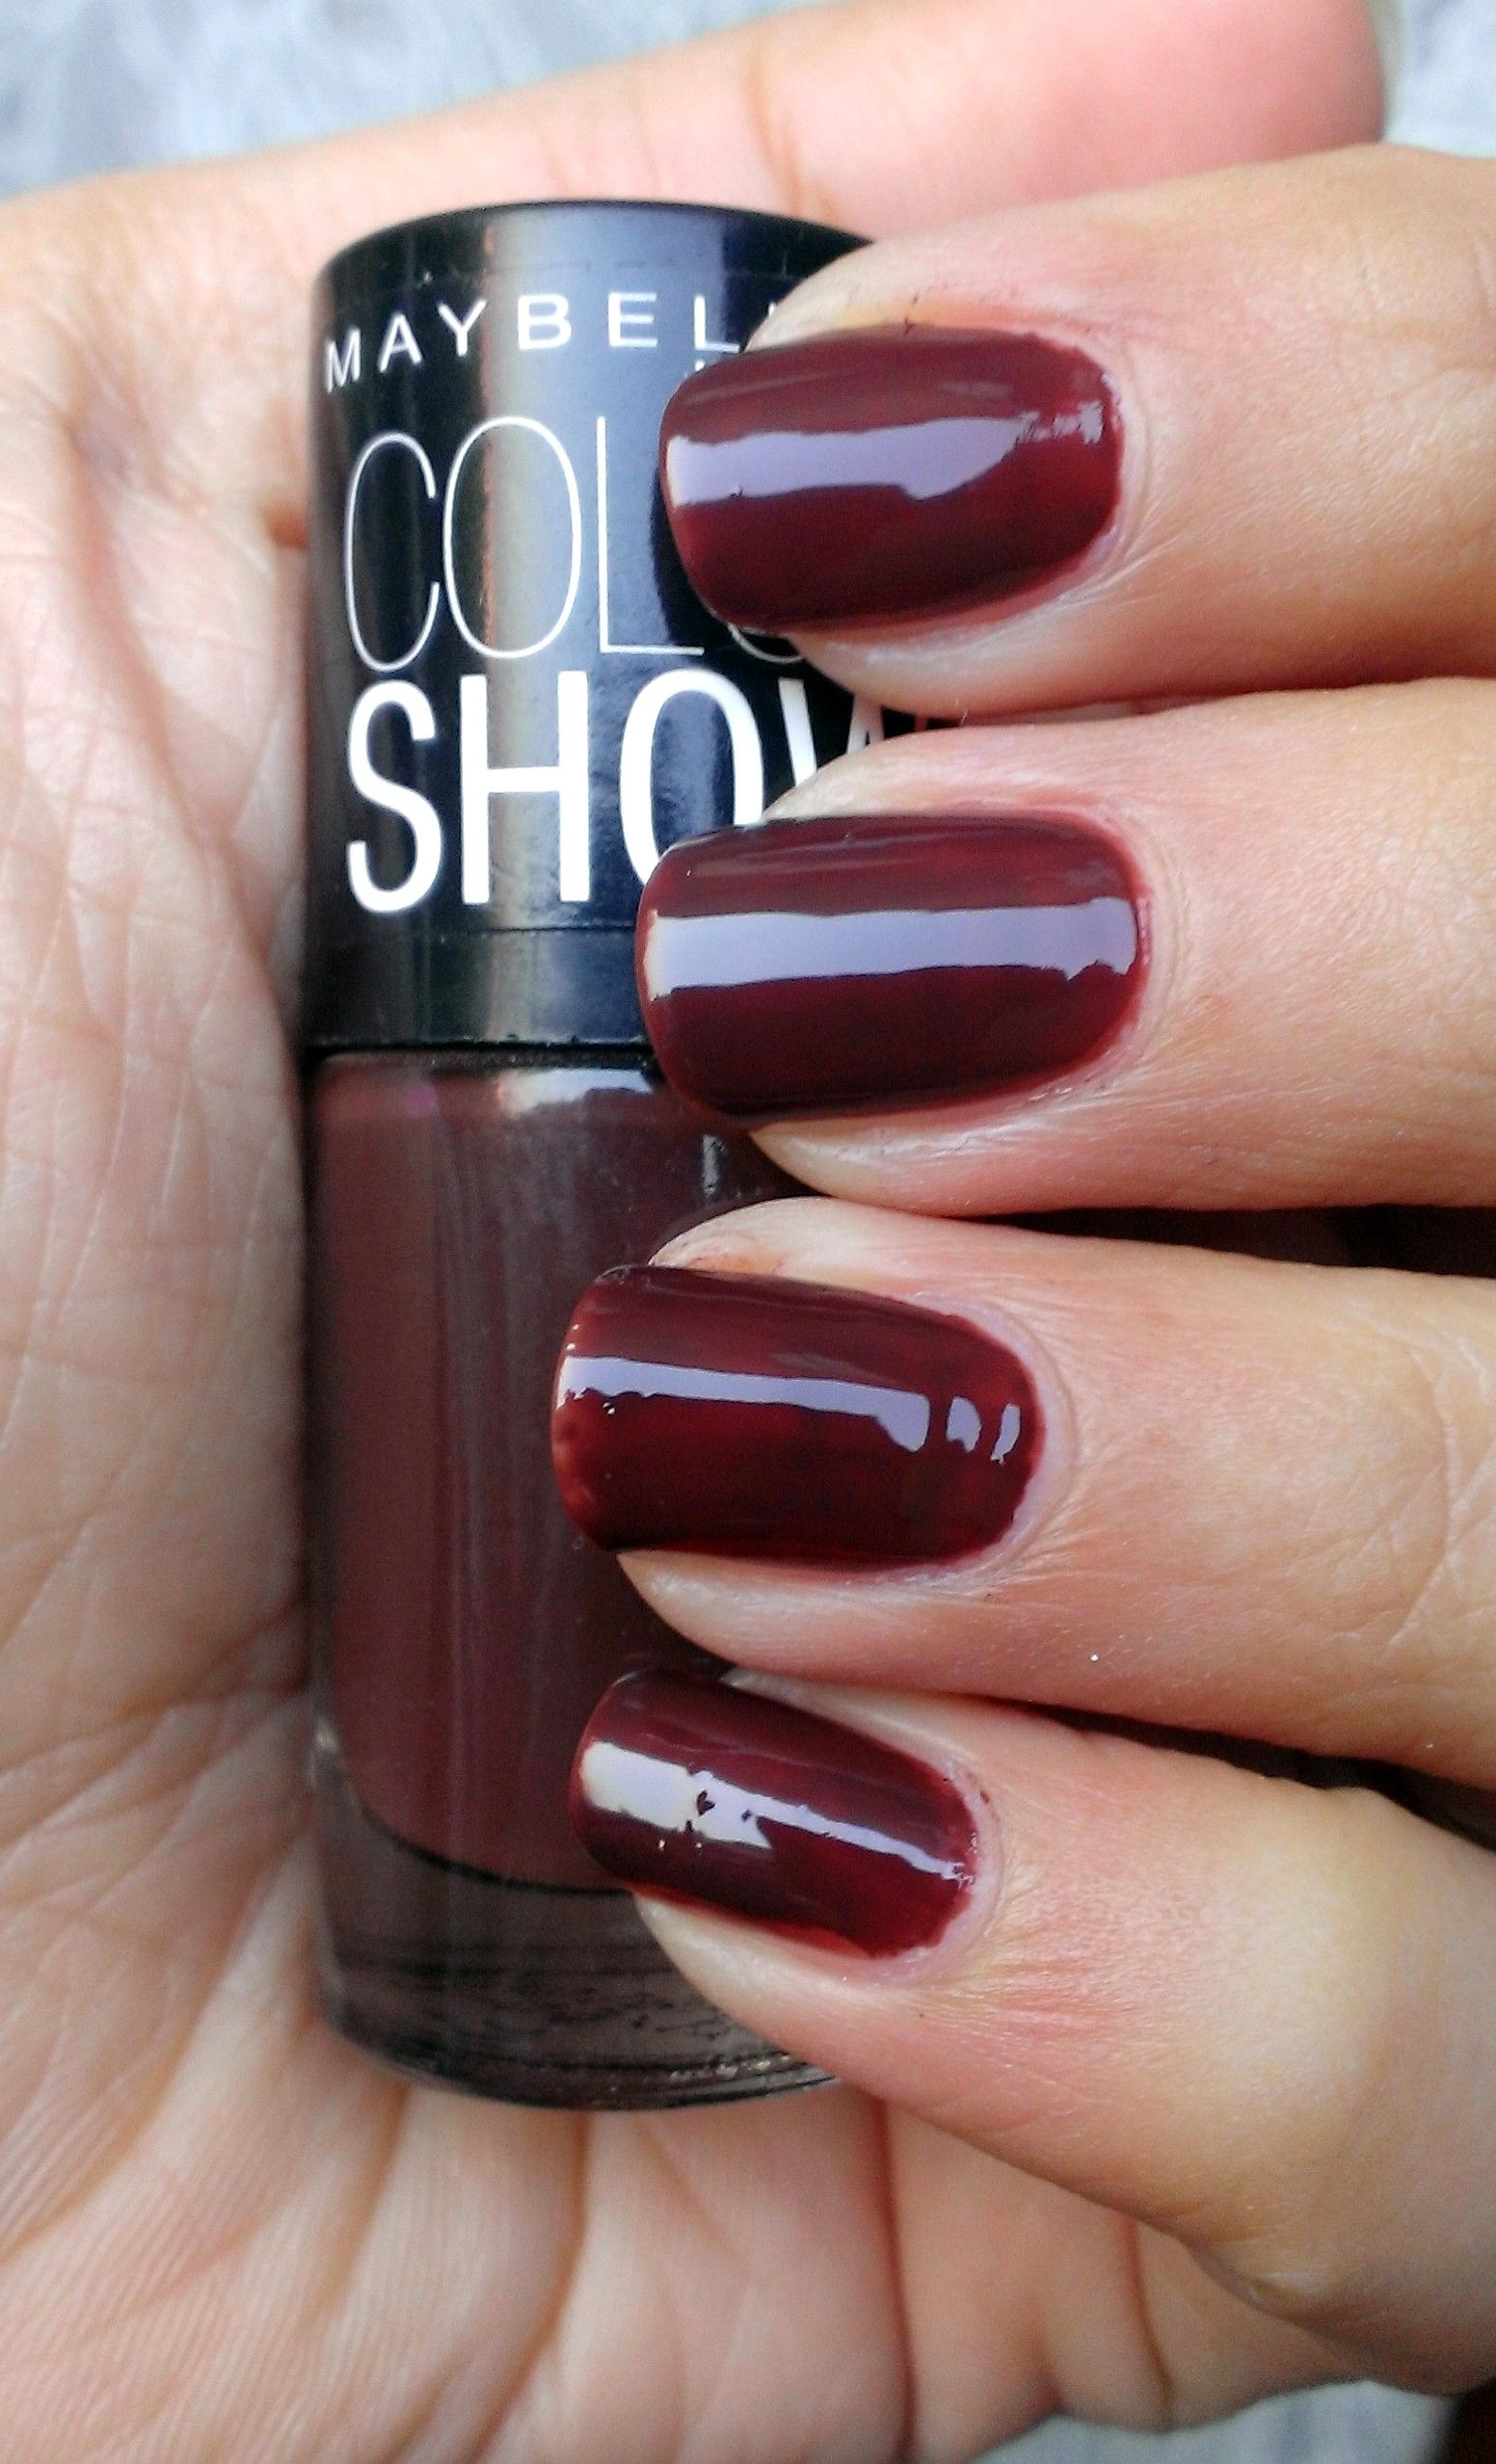 Maybelline Color Show Nail Lacquer Choco Sin